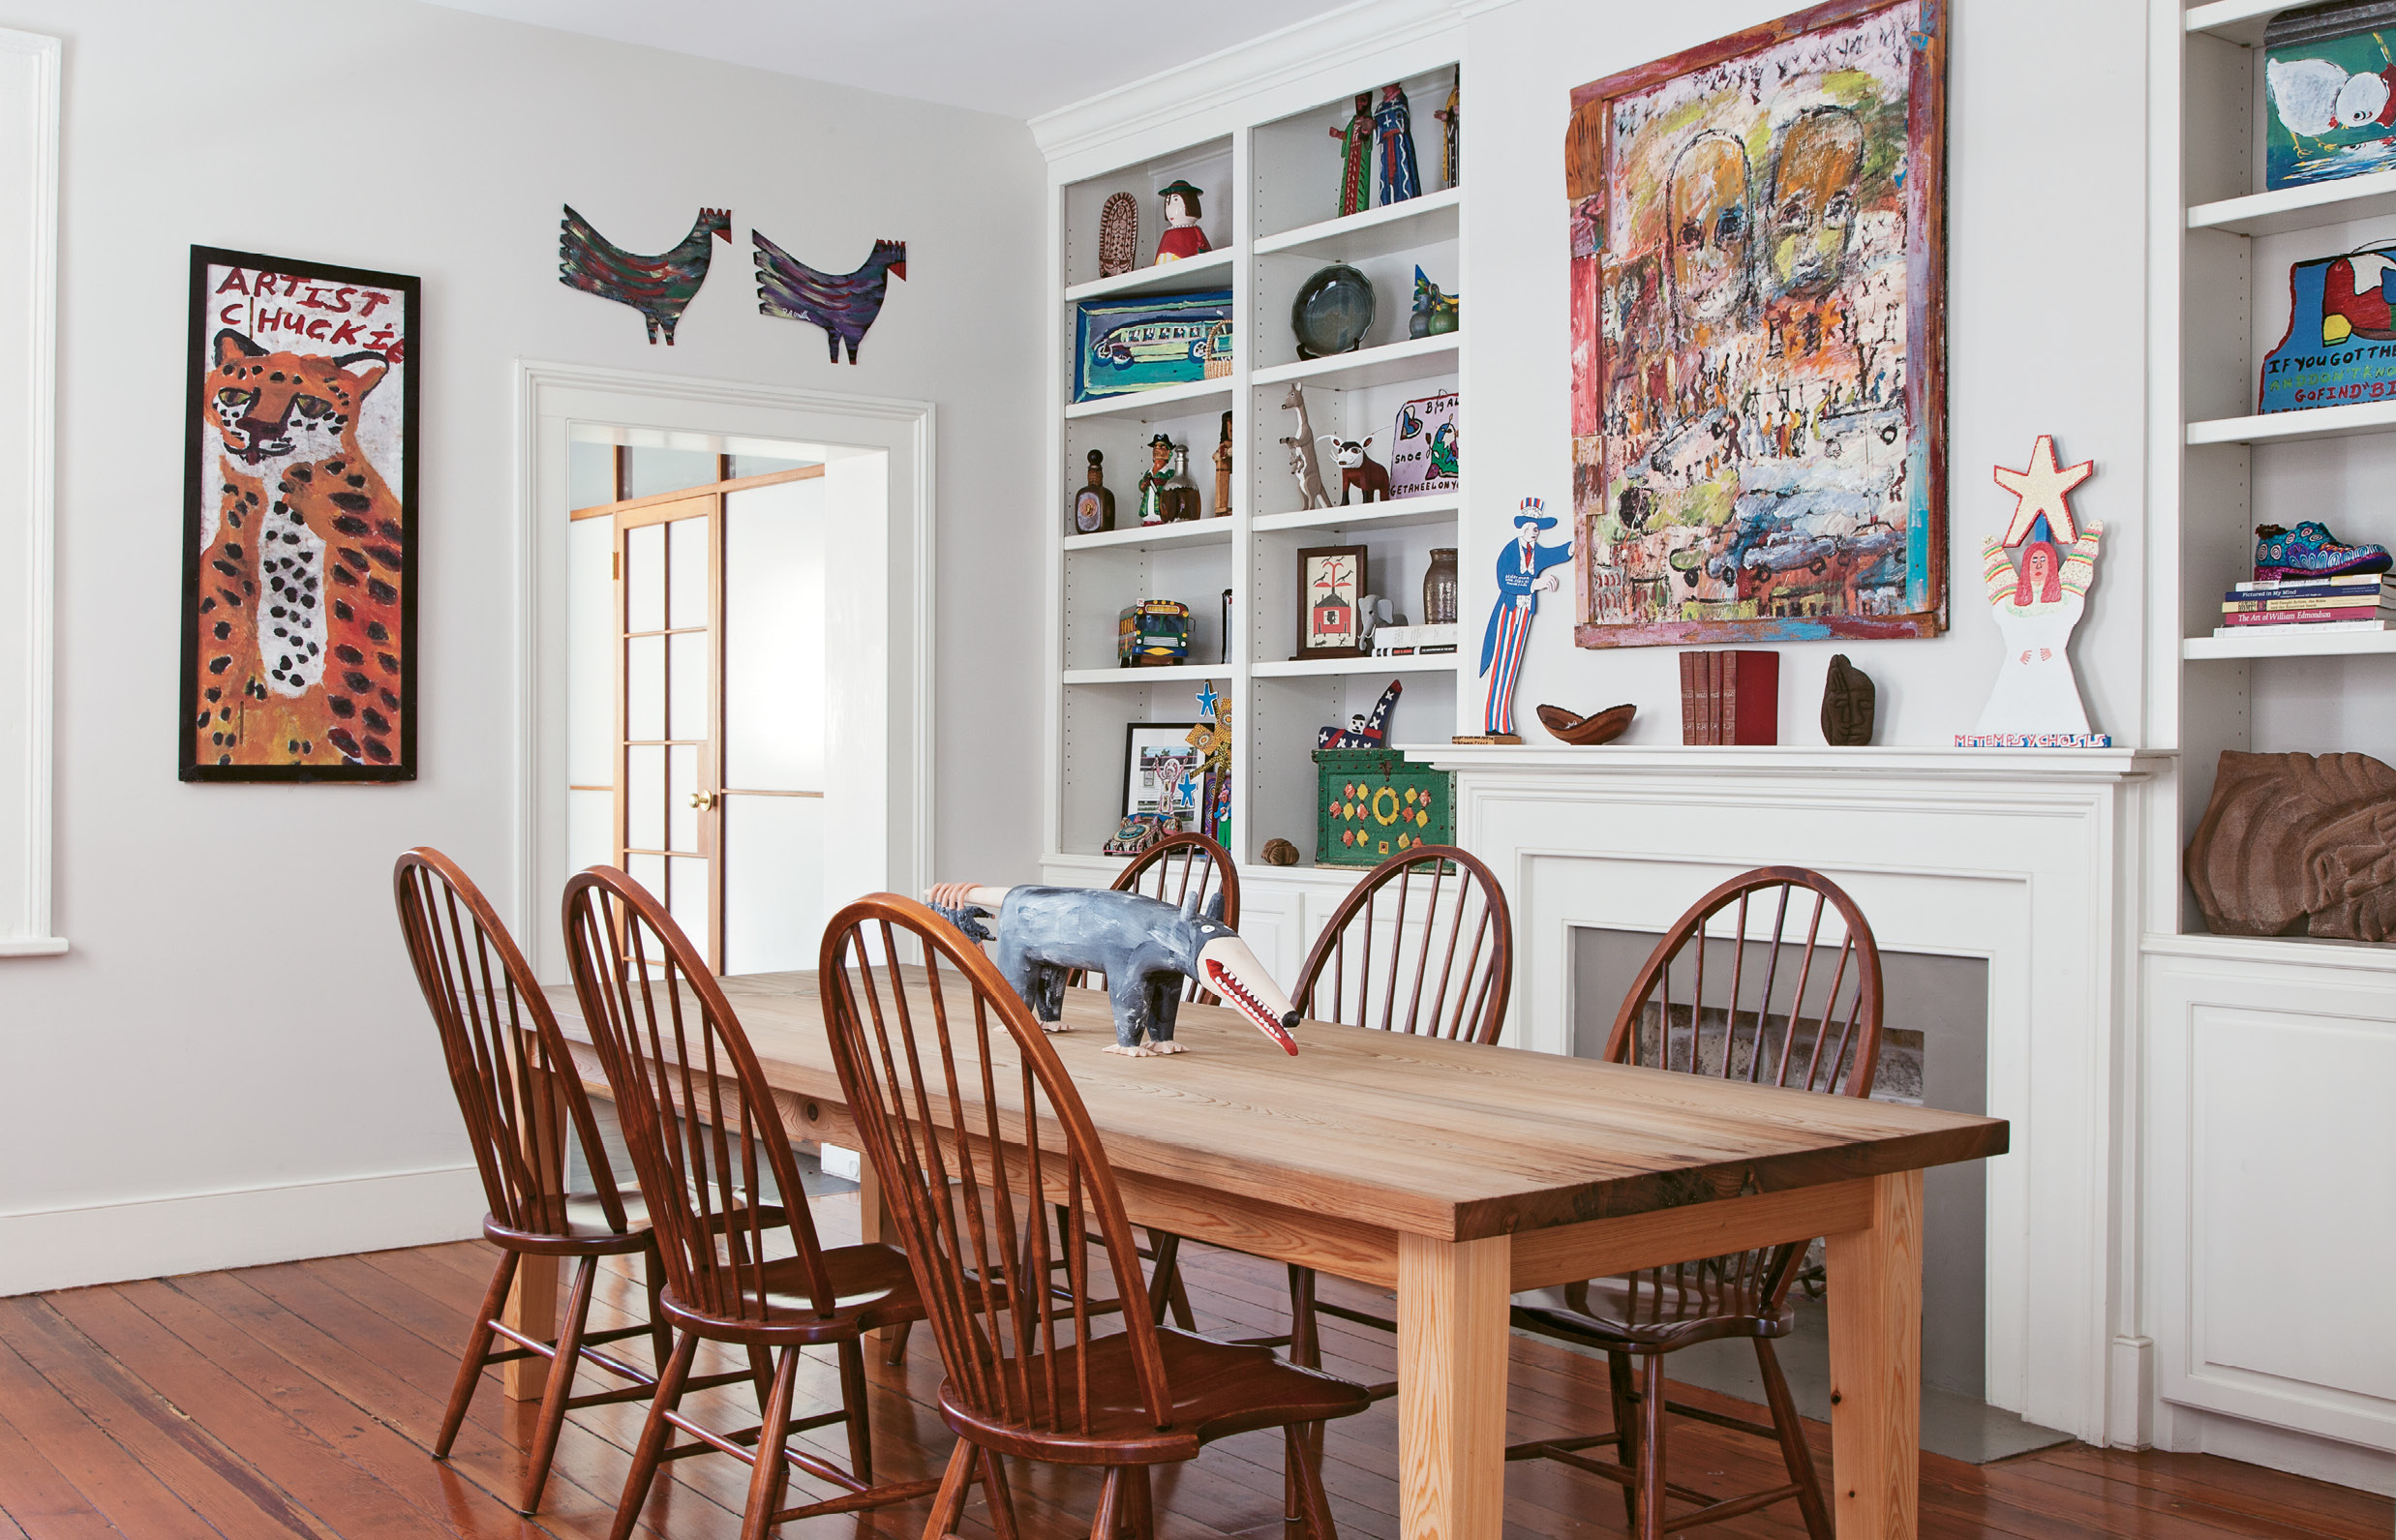 In the gallery-like dining room, built-ins display sculptures and smaller works